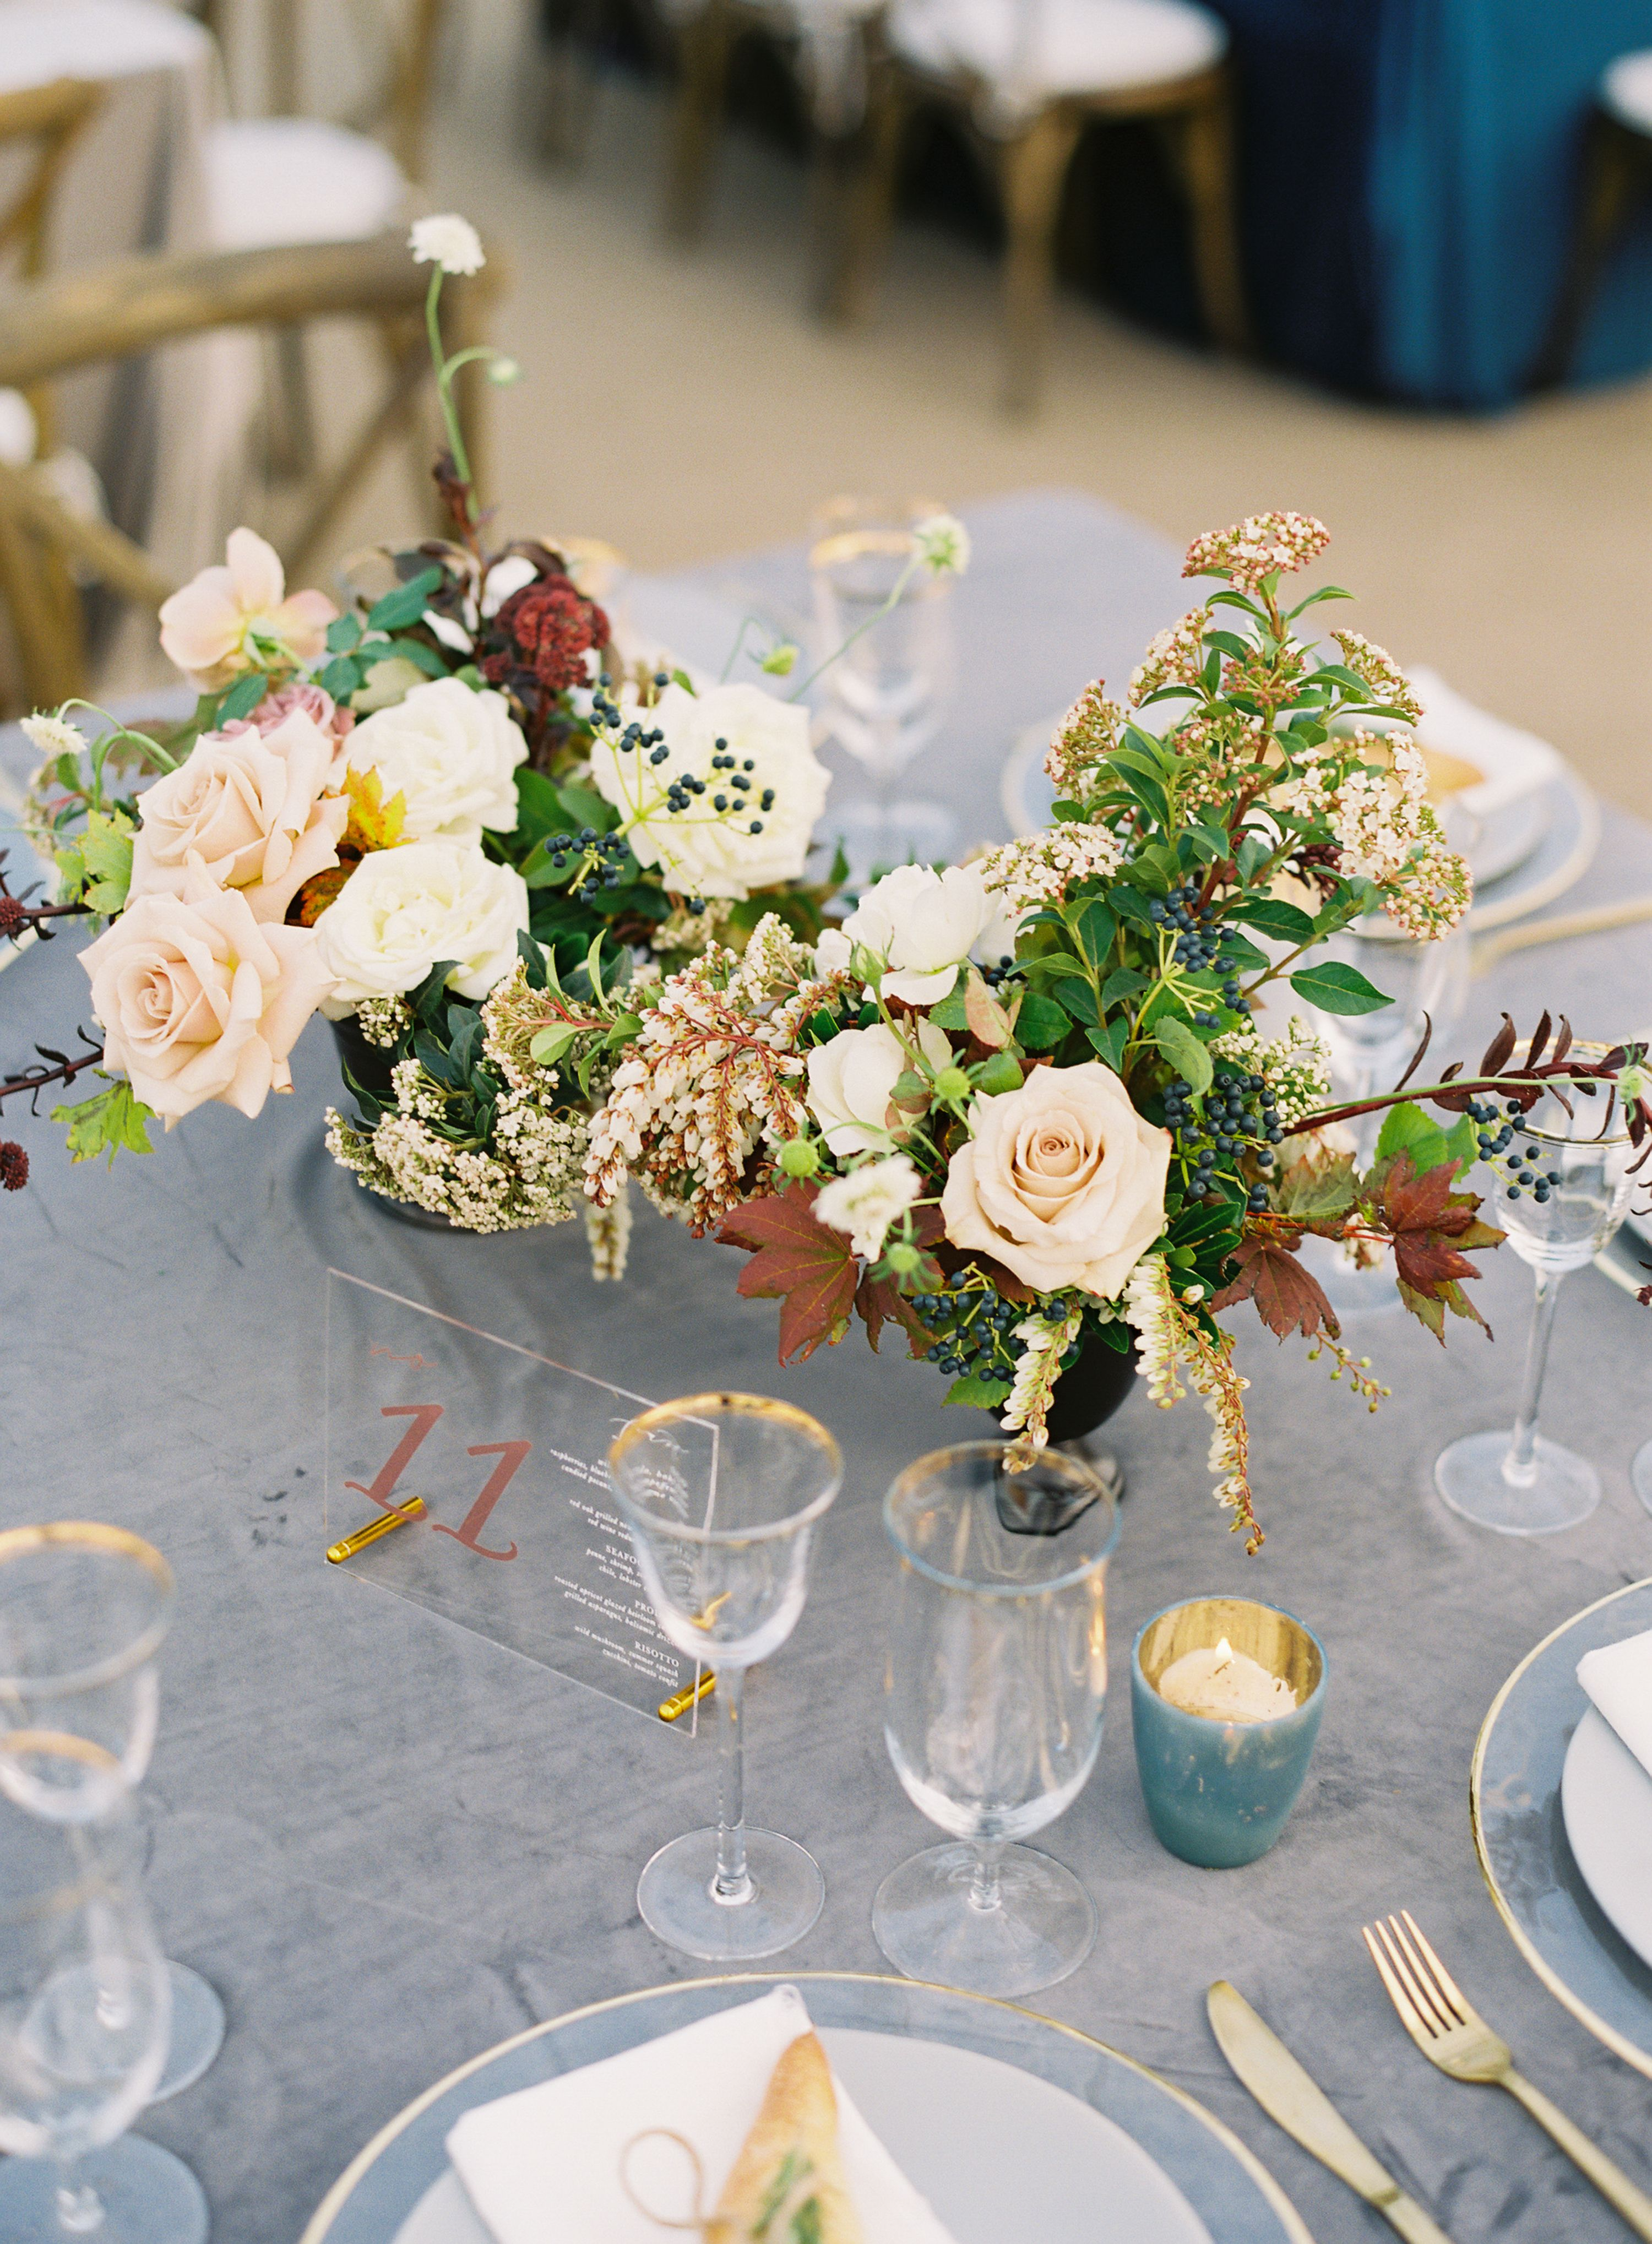 Tavola Park Jewel Tone Autumn Wedding At Kestrel Park In Santa Ynez In 2019